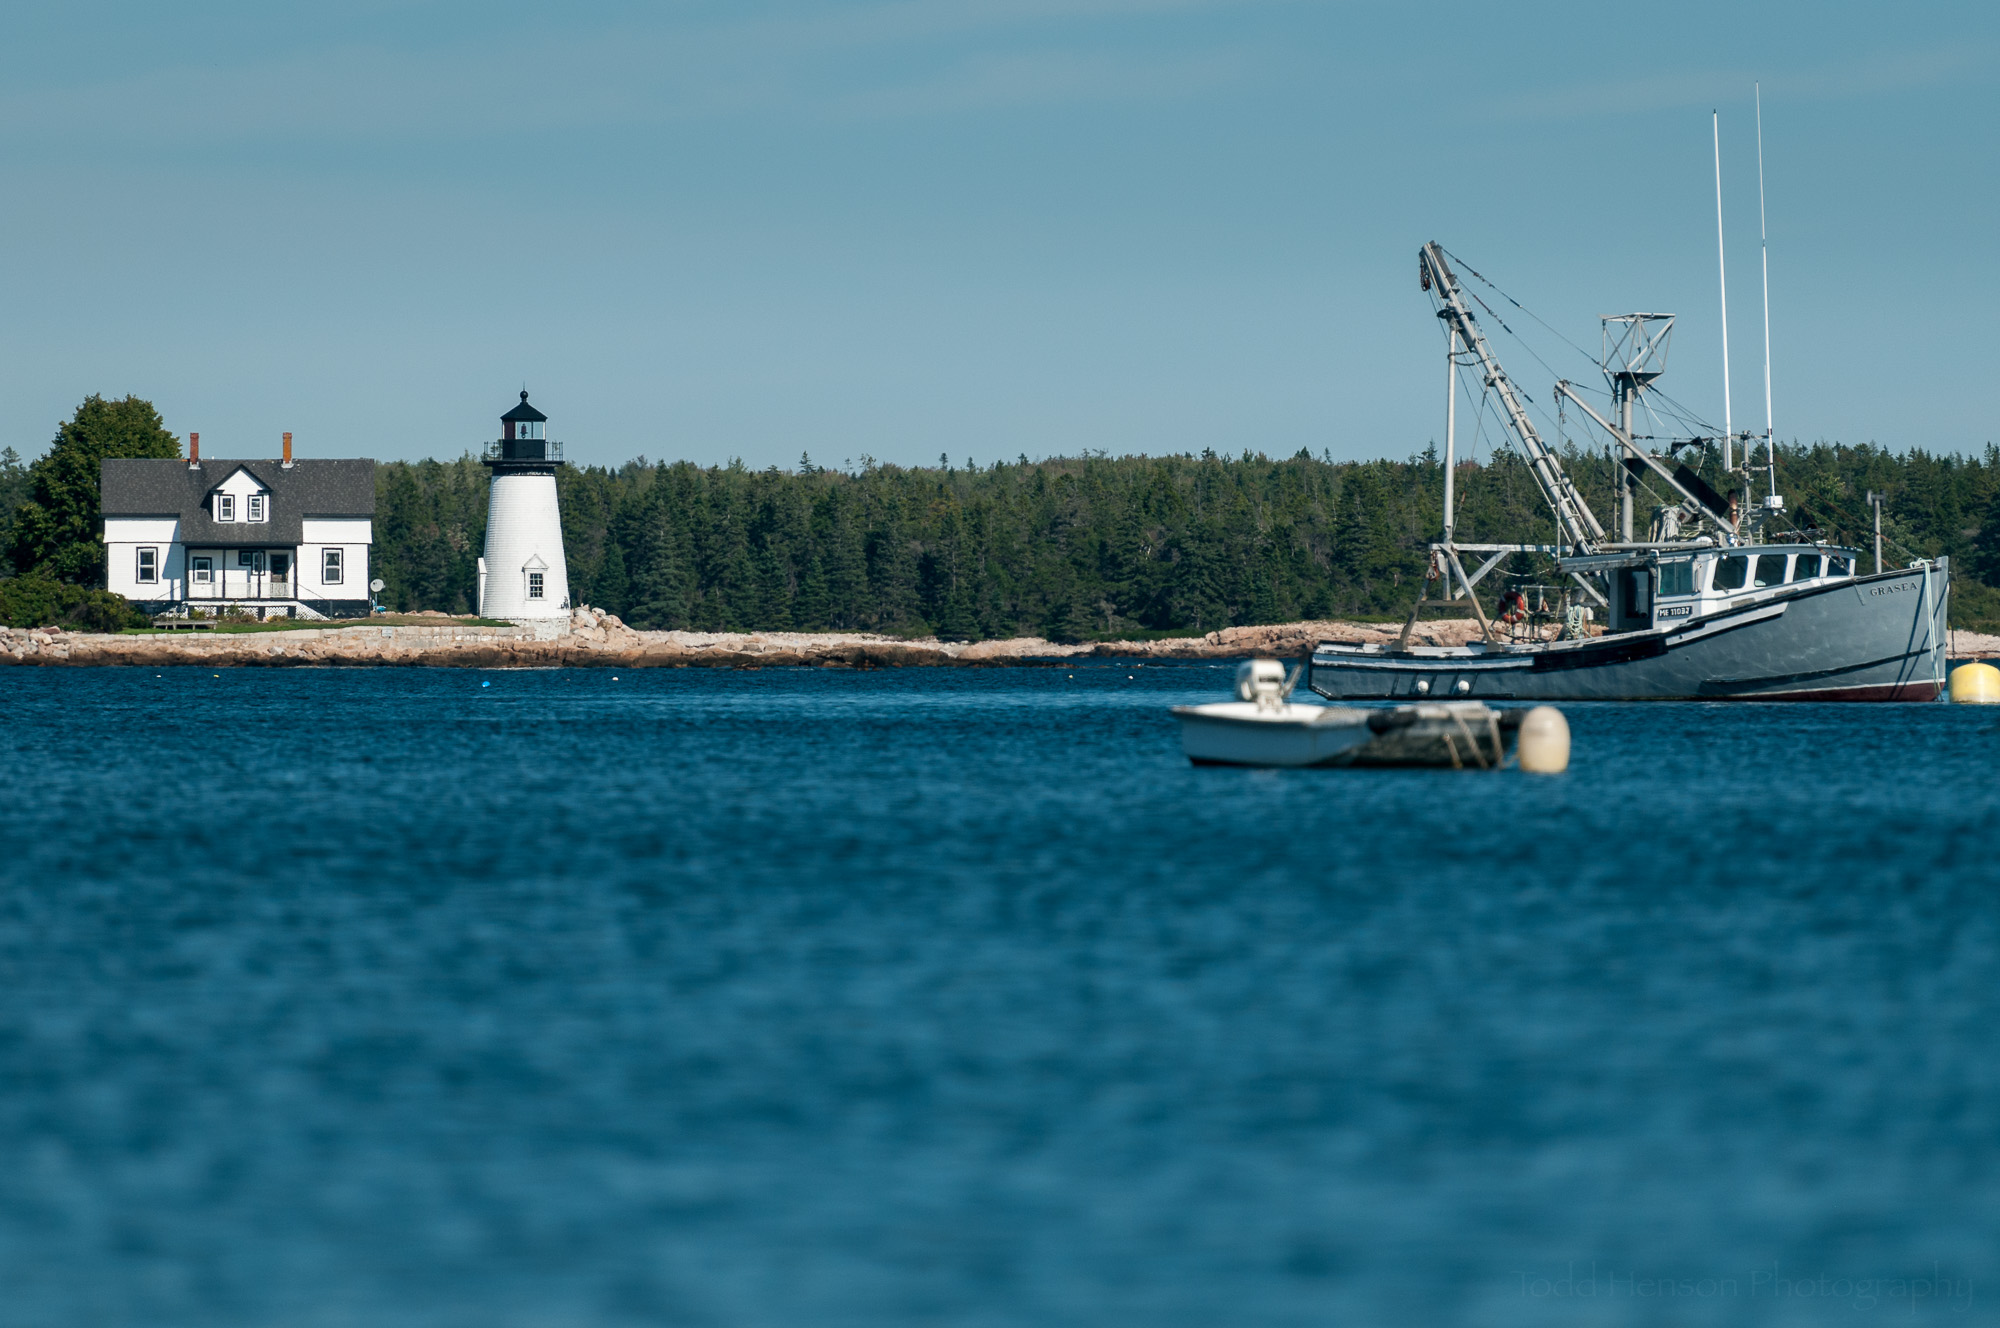 Prospect Harbor Point Light, Maine, with fishing boats in Inner Harbor, viewed from the shore of Prospect Harbor